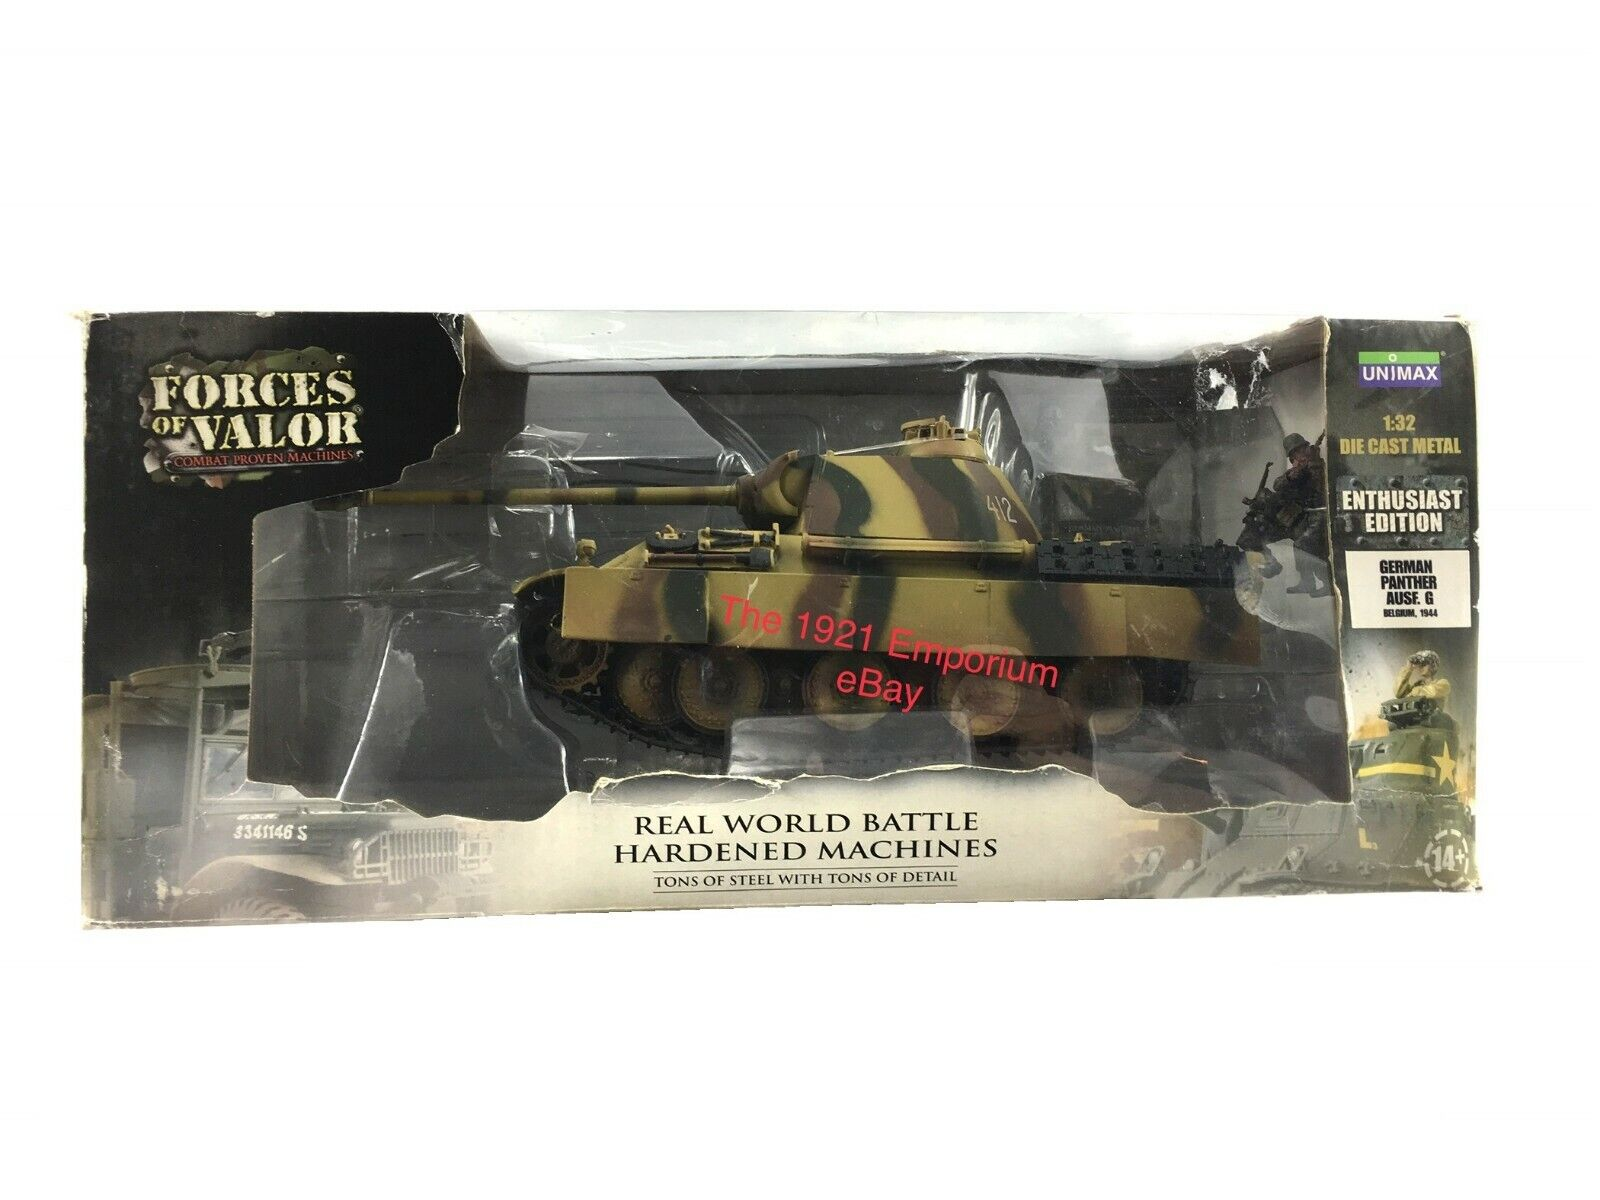 1 32 Scale Diecast Unimax Toys Forces of Valor WWII German Army Panther Tank